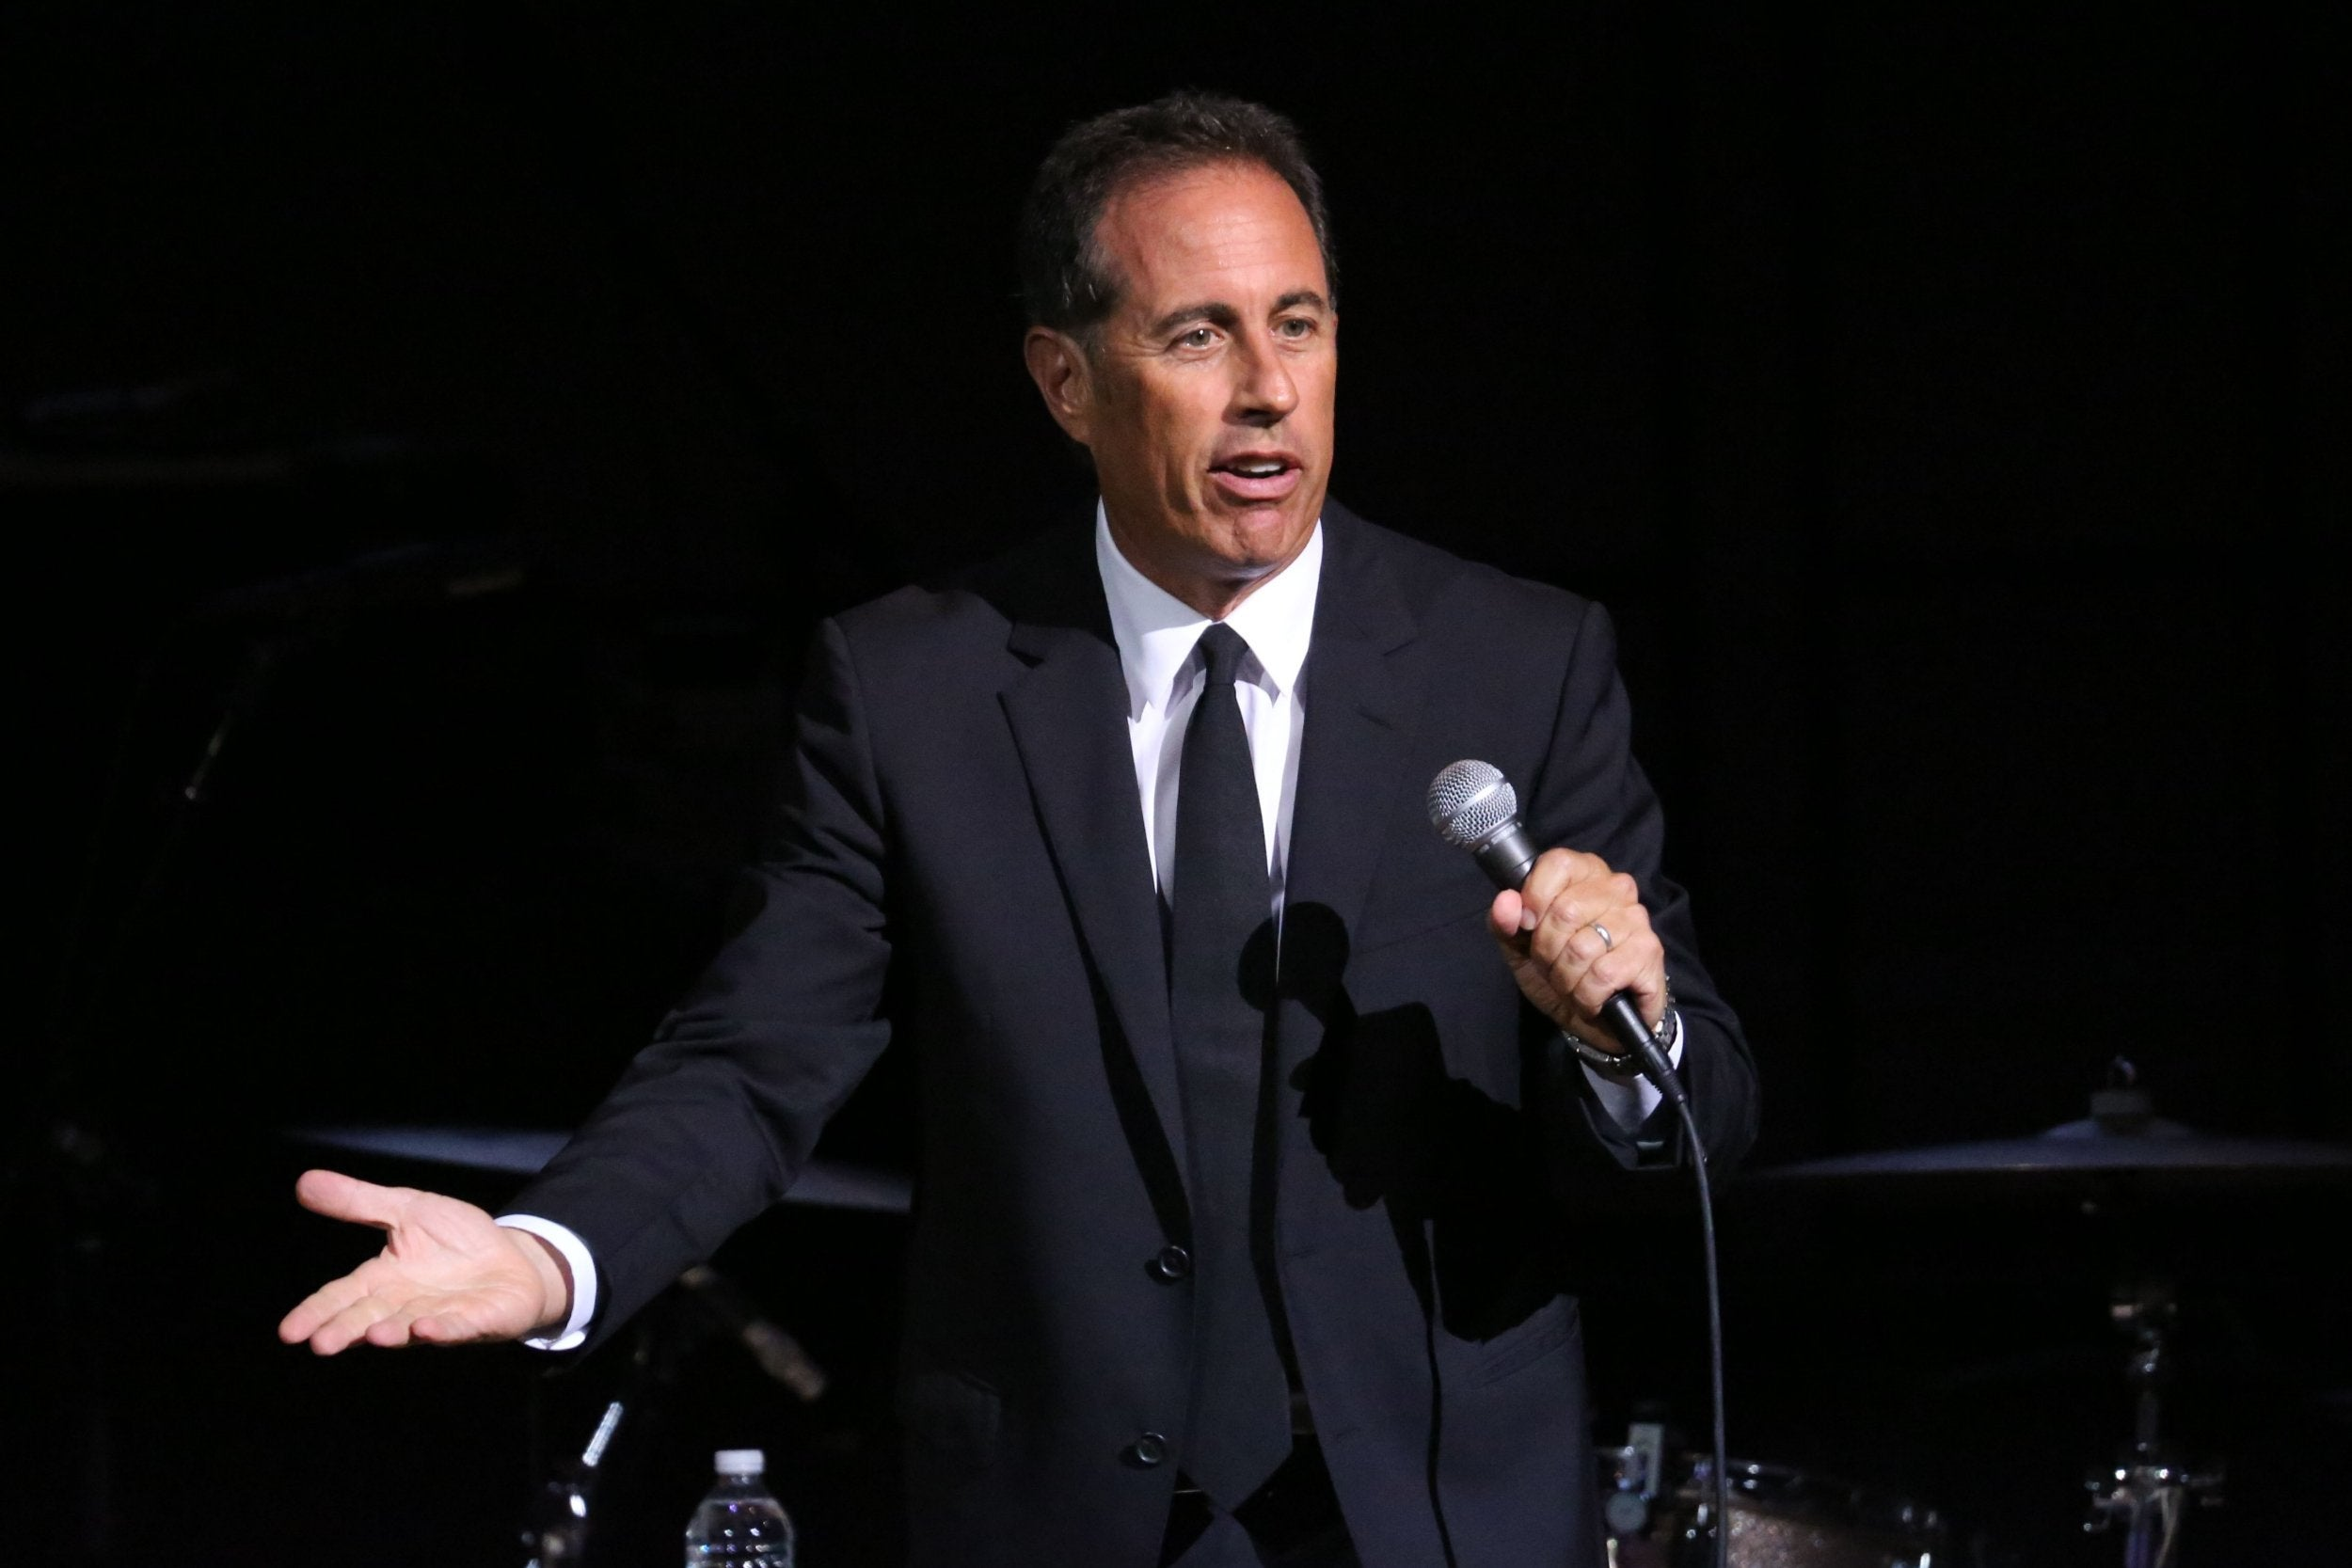 fd9e8df6 All credit to Jerry Seinfeld for calling out racism but his N-word  intervention was hardly heroic | The Independent